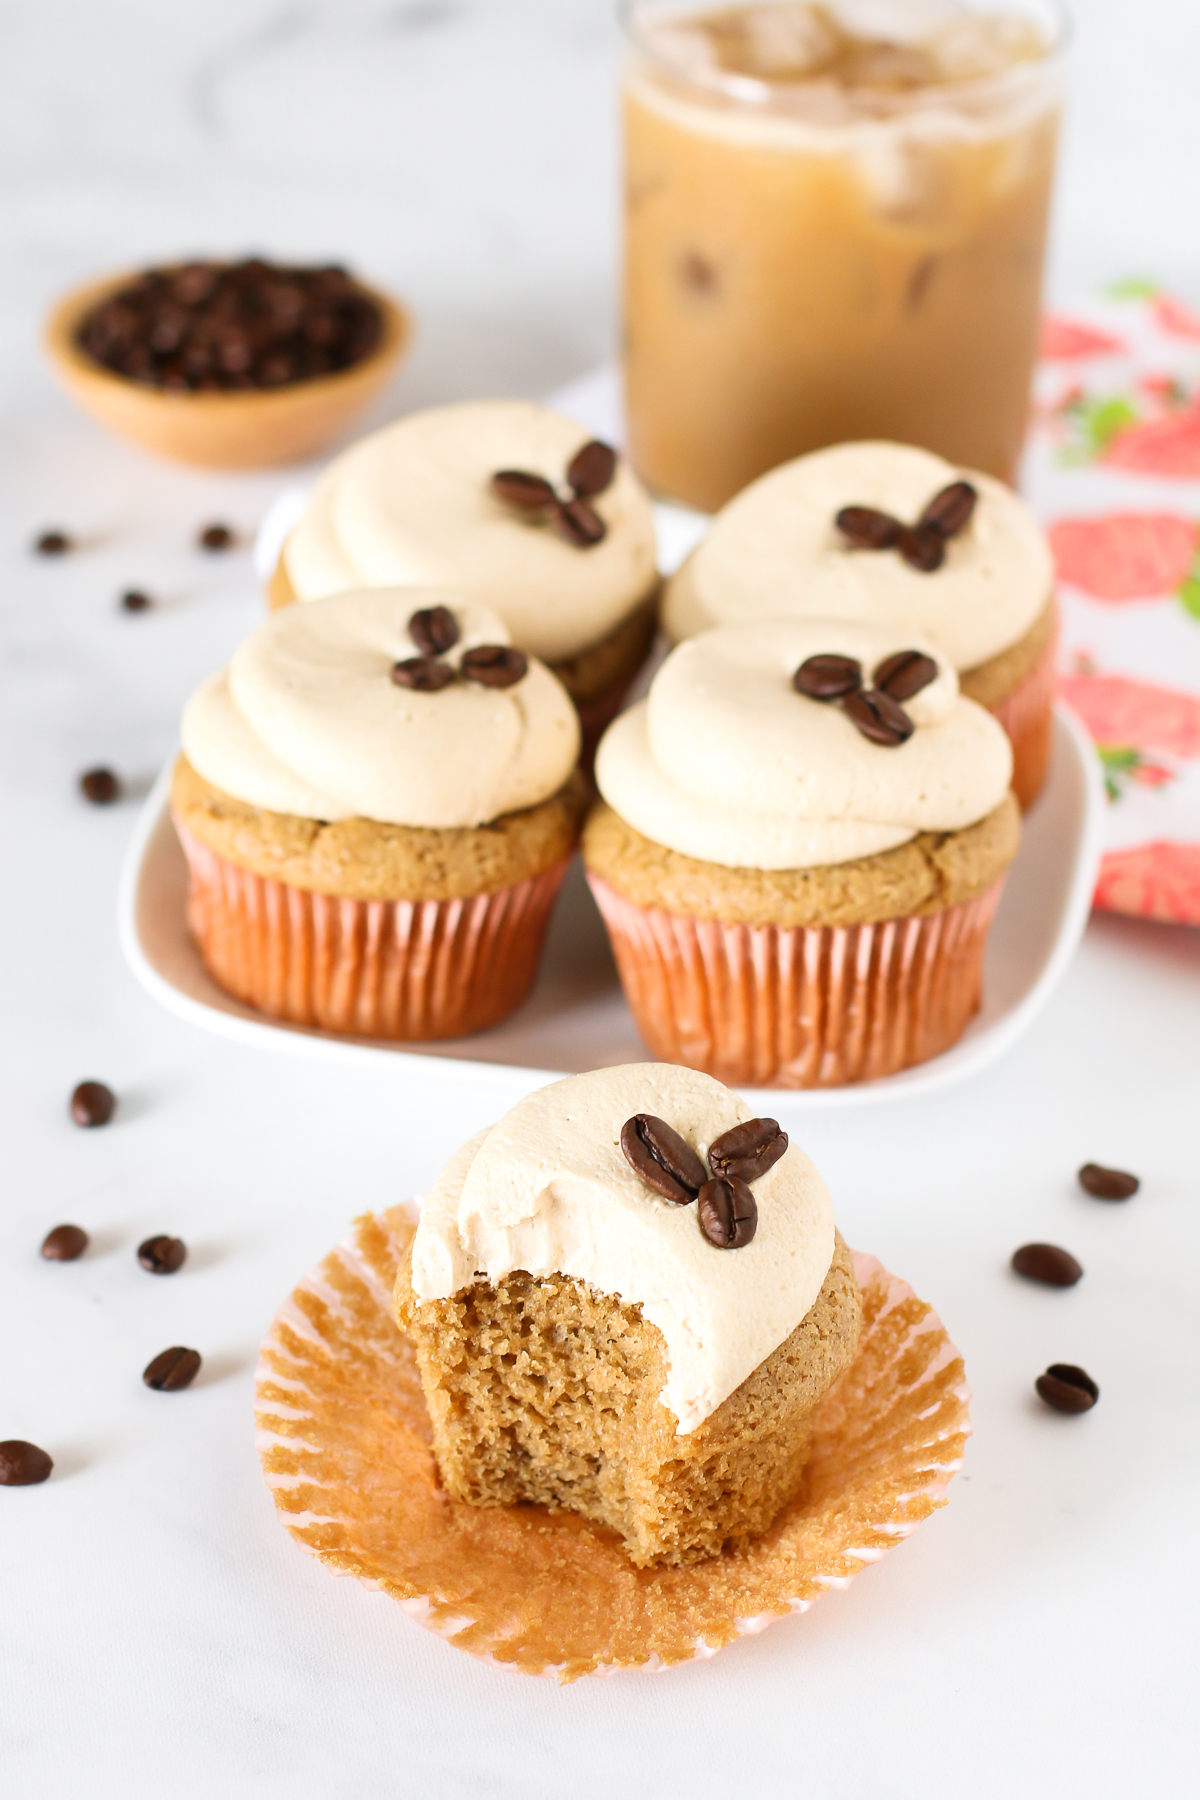 Gluten Free Vegan Vanilla Latte Cupcakes. Fluffy coffee cupcakes with a vanilla espresso buttercream. A coffee lovers dream!